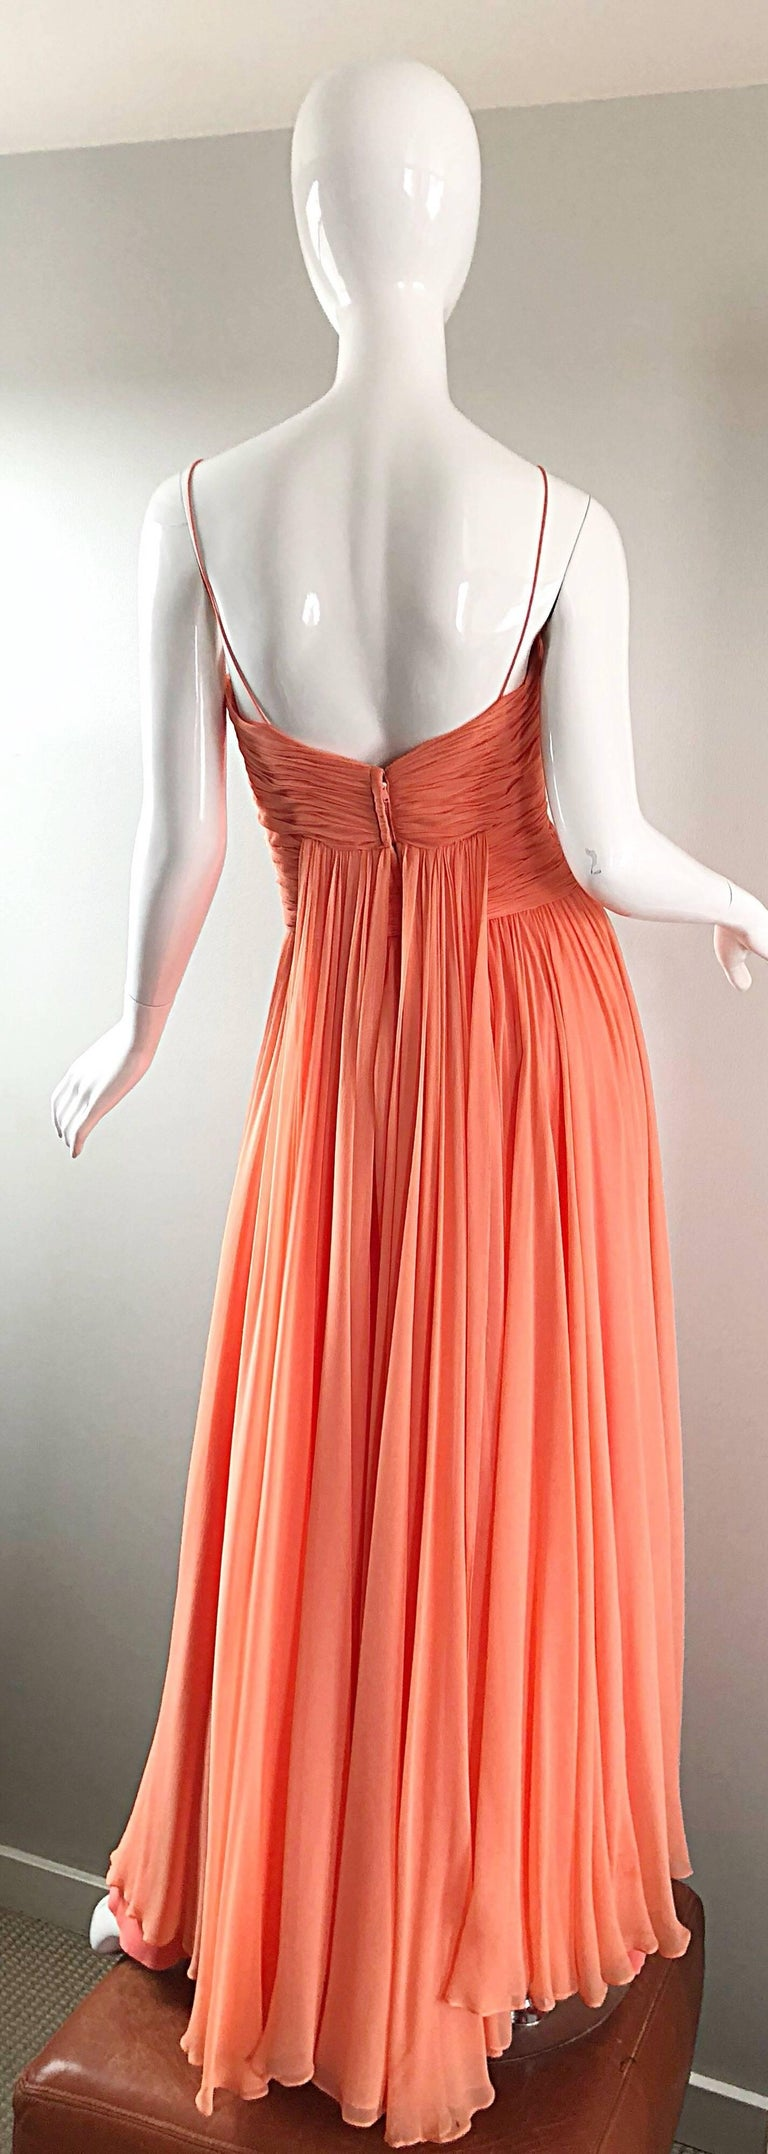 Women's Gorgeous 1950s Saks 5th Ave. Salmon / Coral Pink Silk Chiffon Vintage 50s Gown For Sale